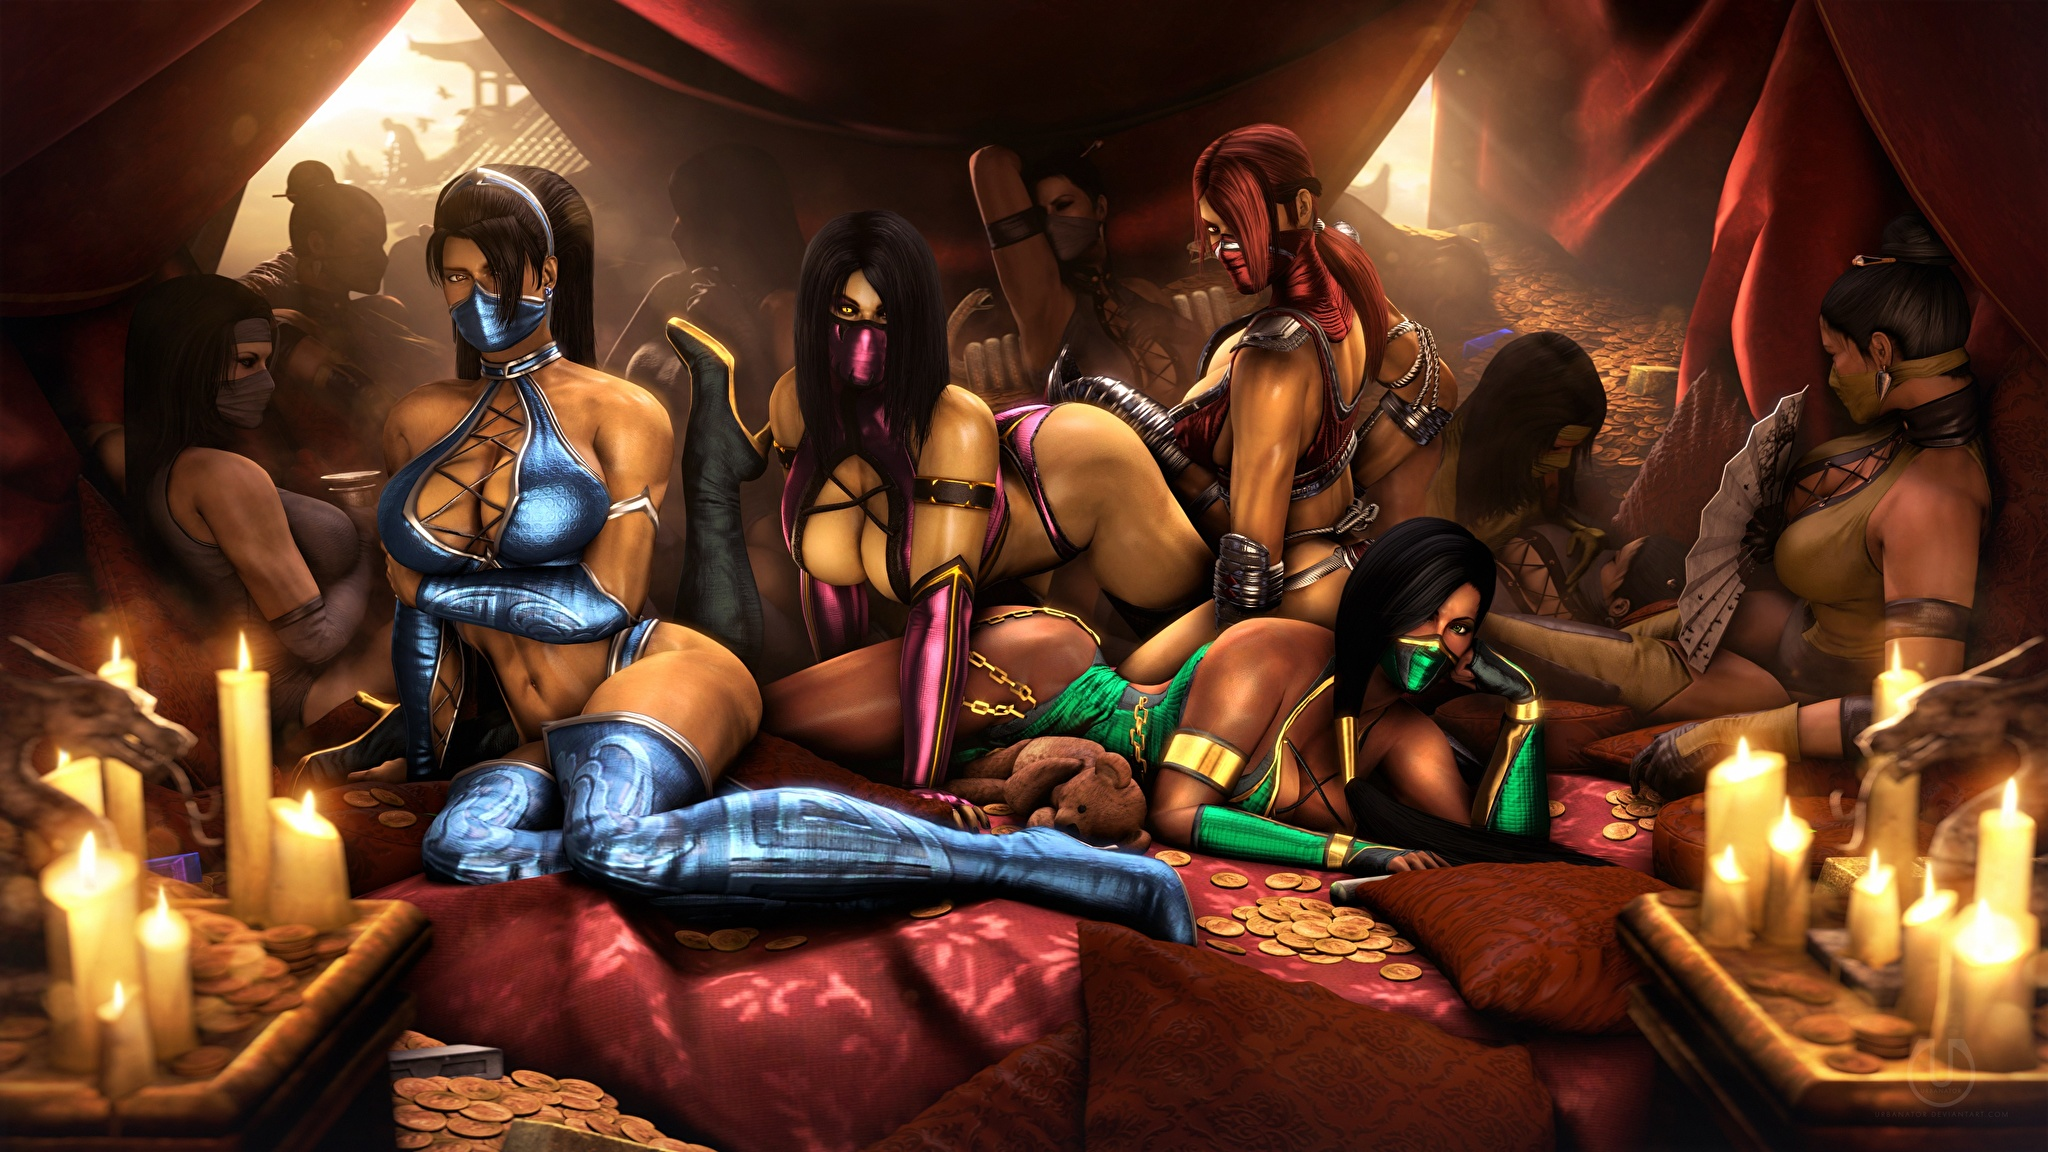 Mortal kombat sexy girl hot hentai adult film